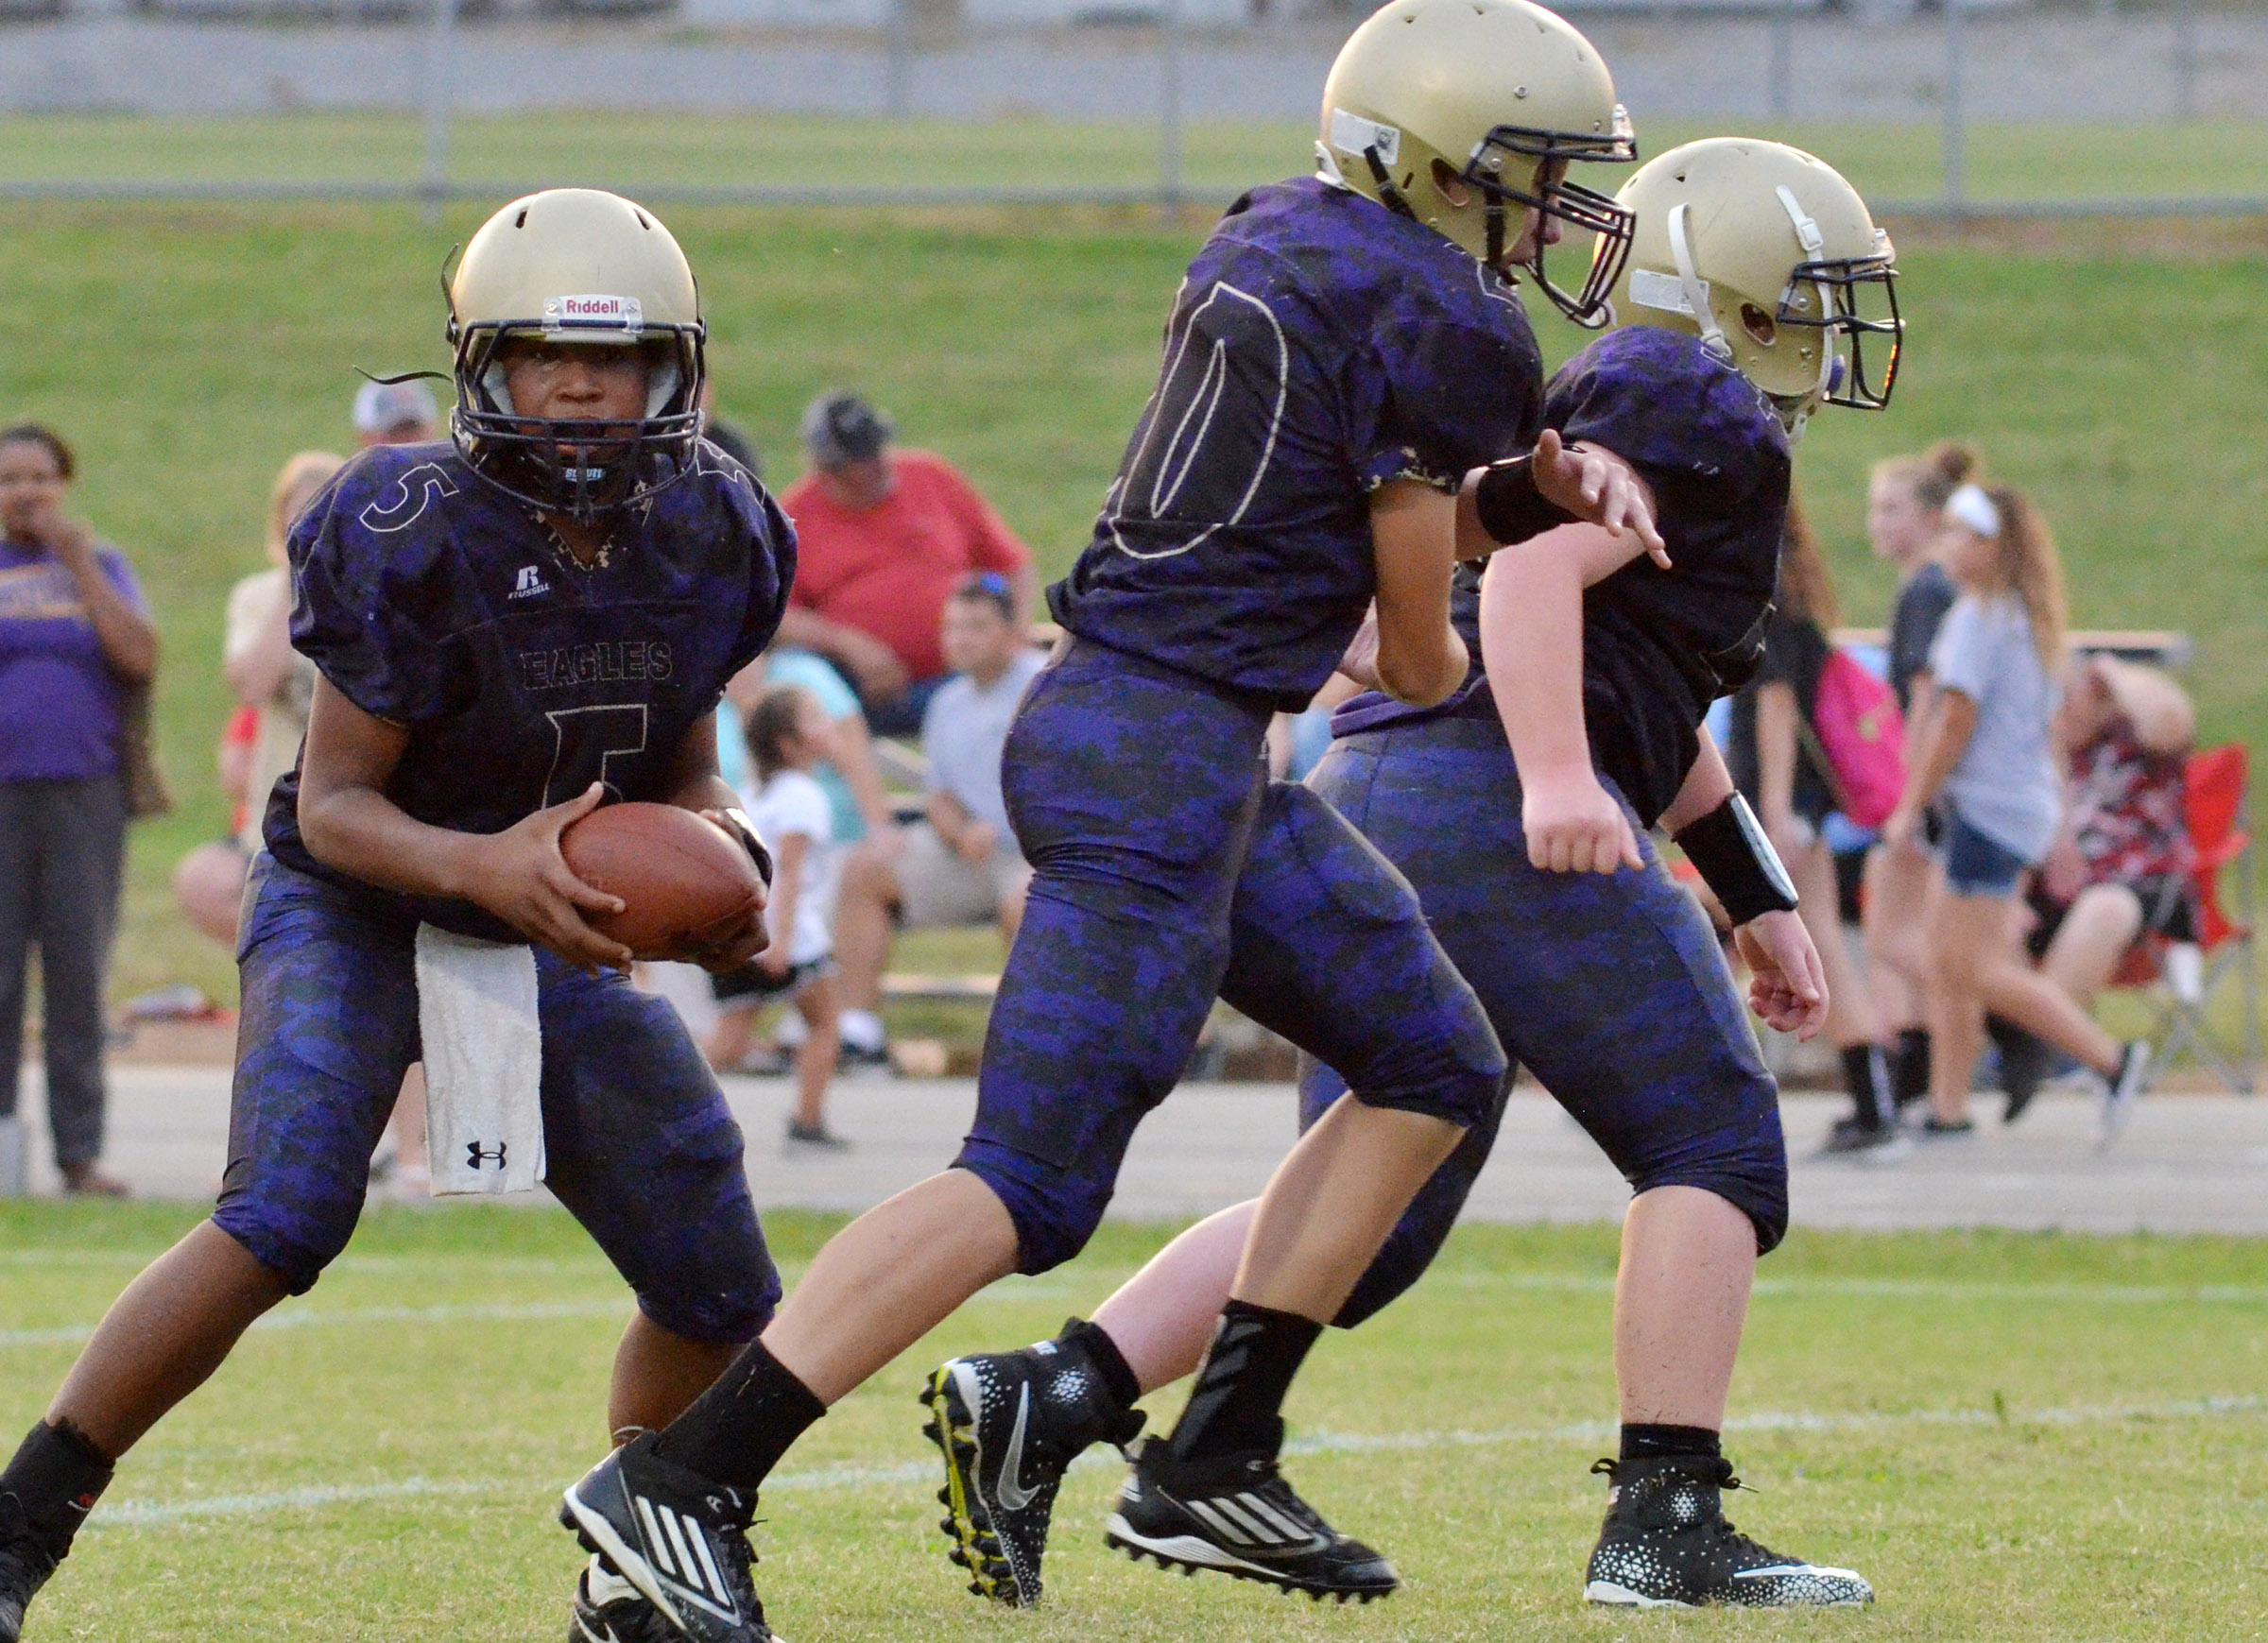 CMS seventh-grader Deondre Weathers looks to pass.